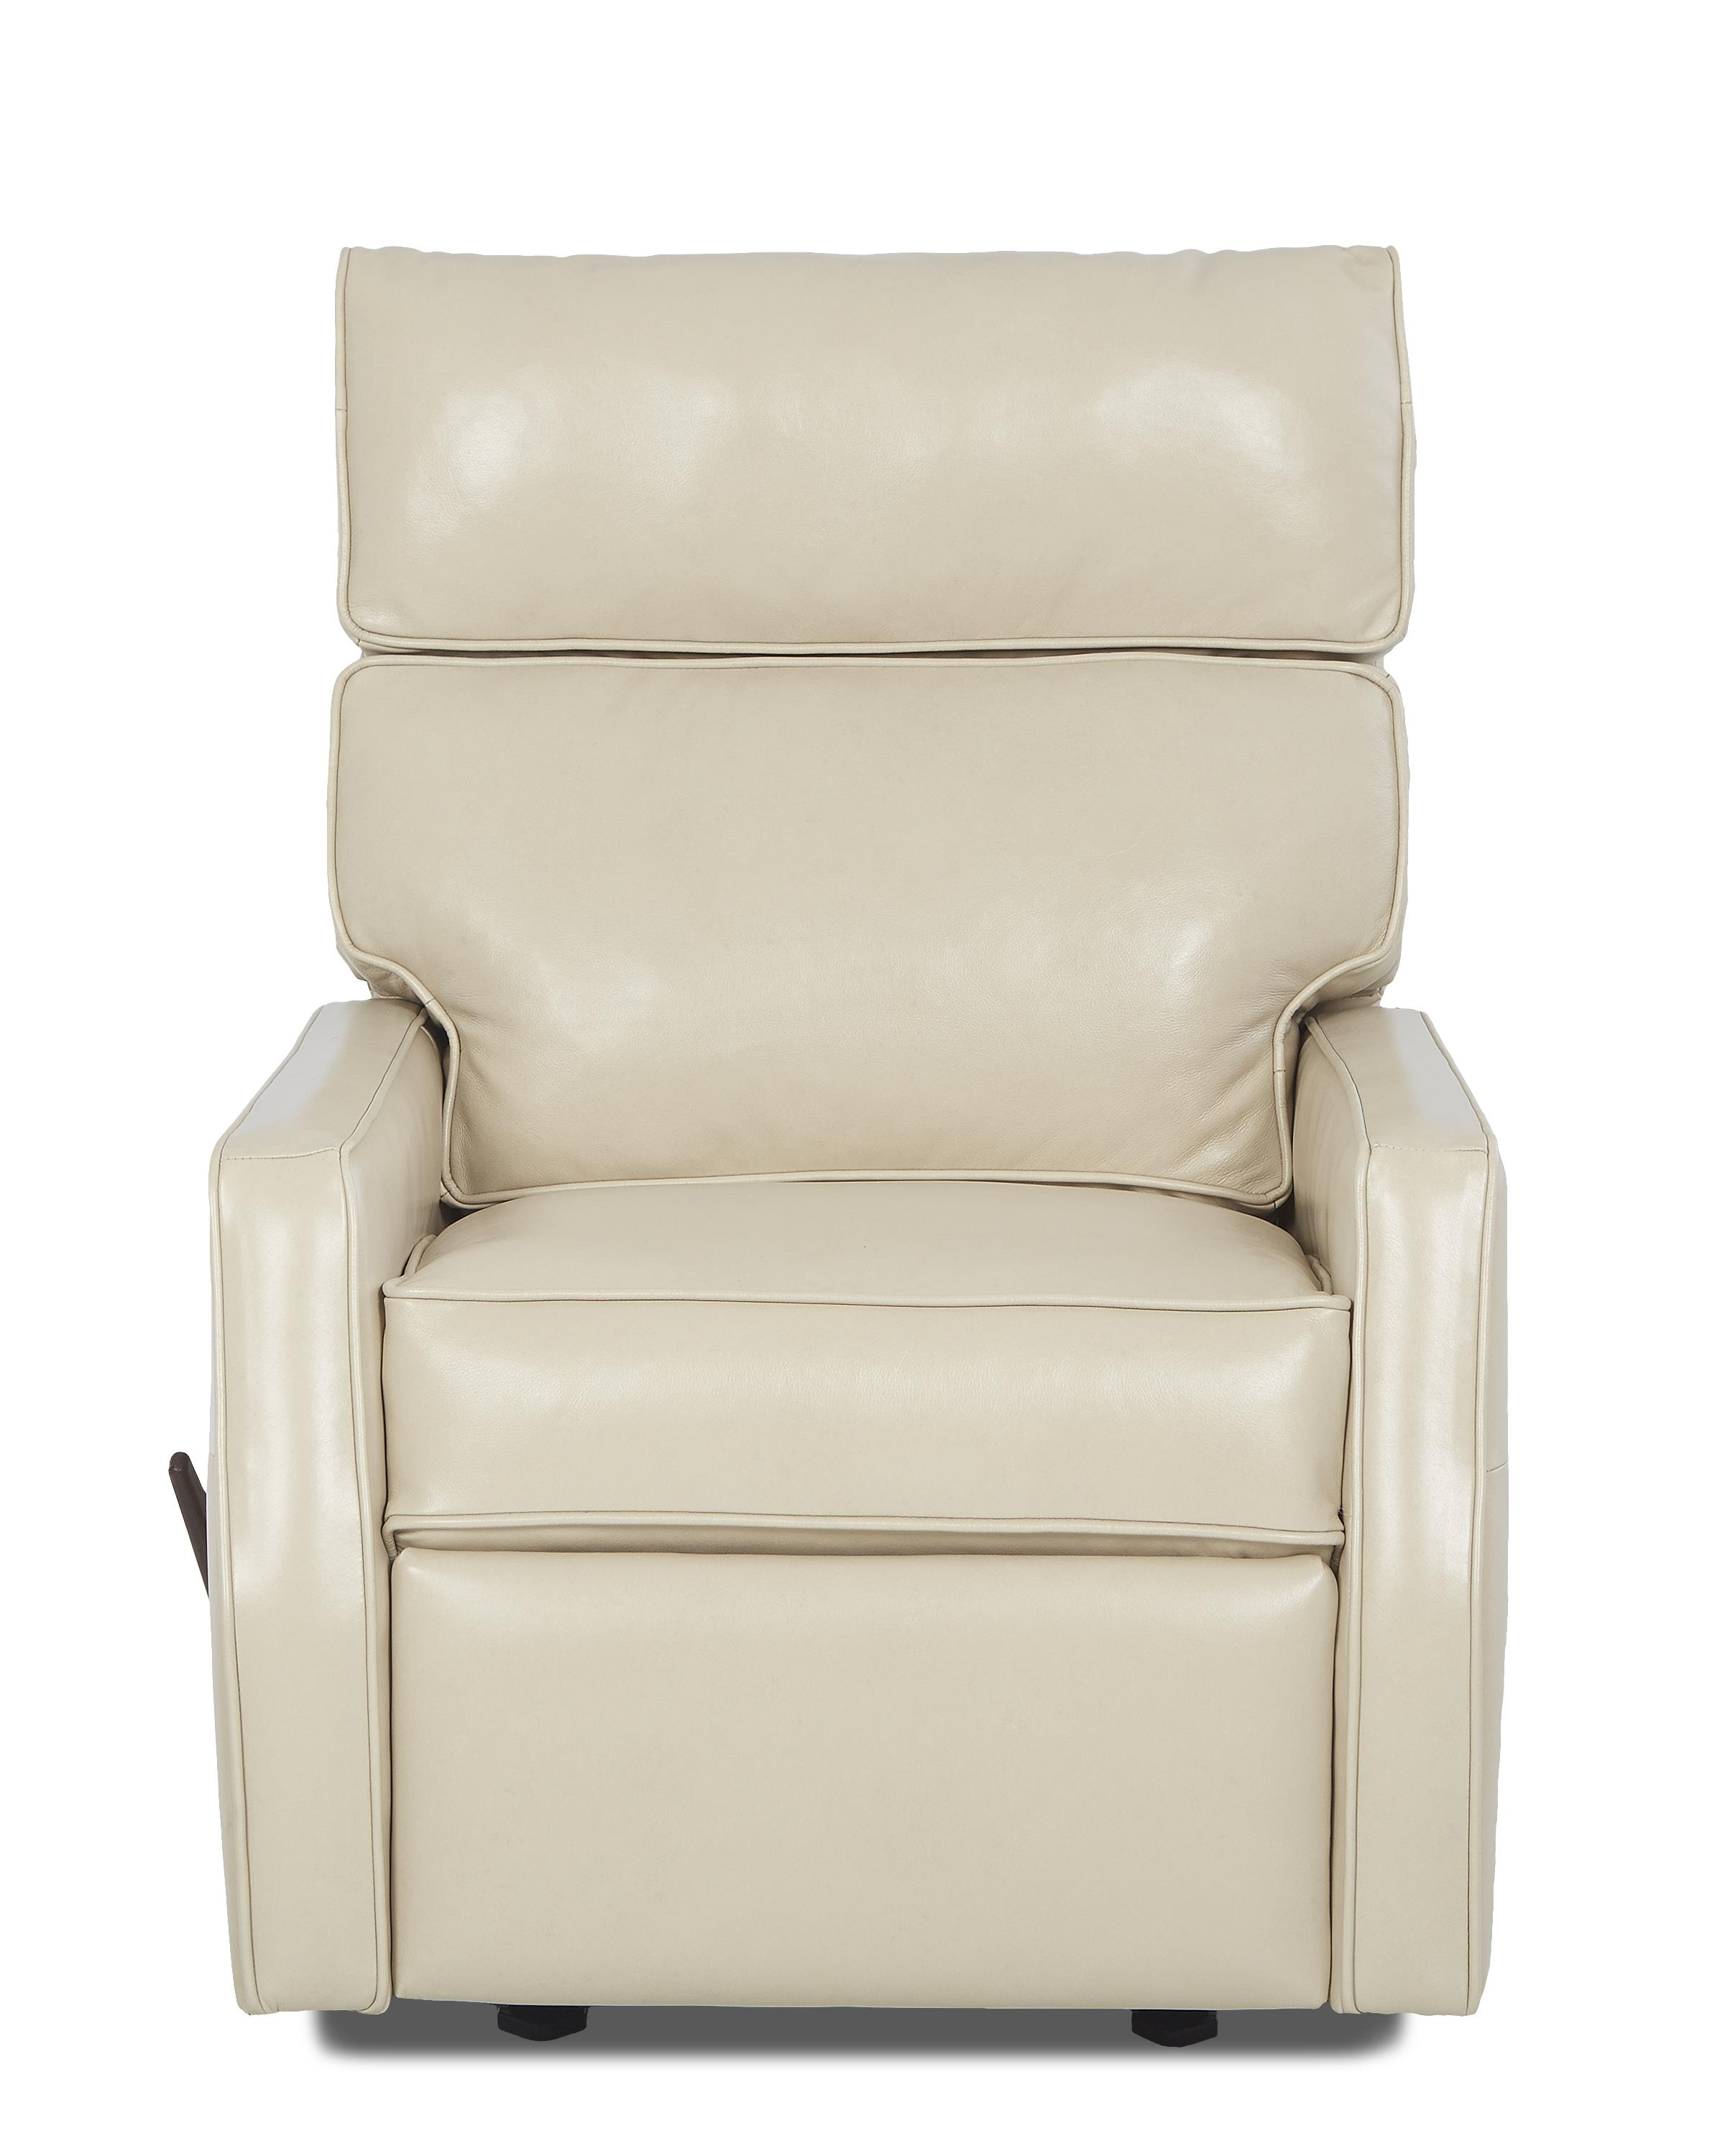 Klaussner Fairlane Contemporary Gliding Reclining Chair - Item Number: LV82803H GLRC-OutsiderAlabaster